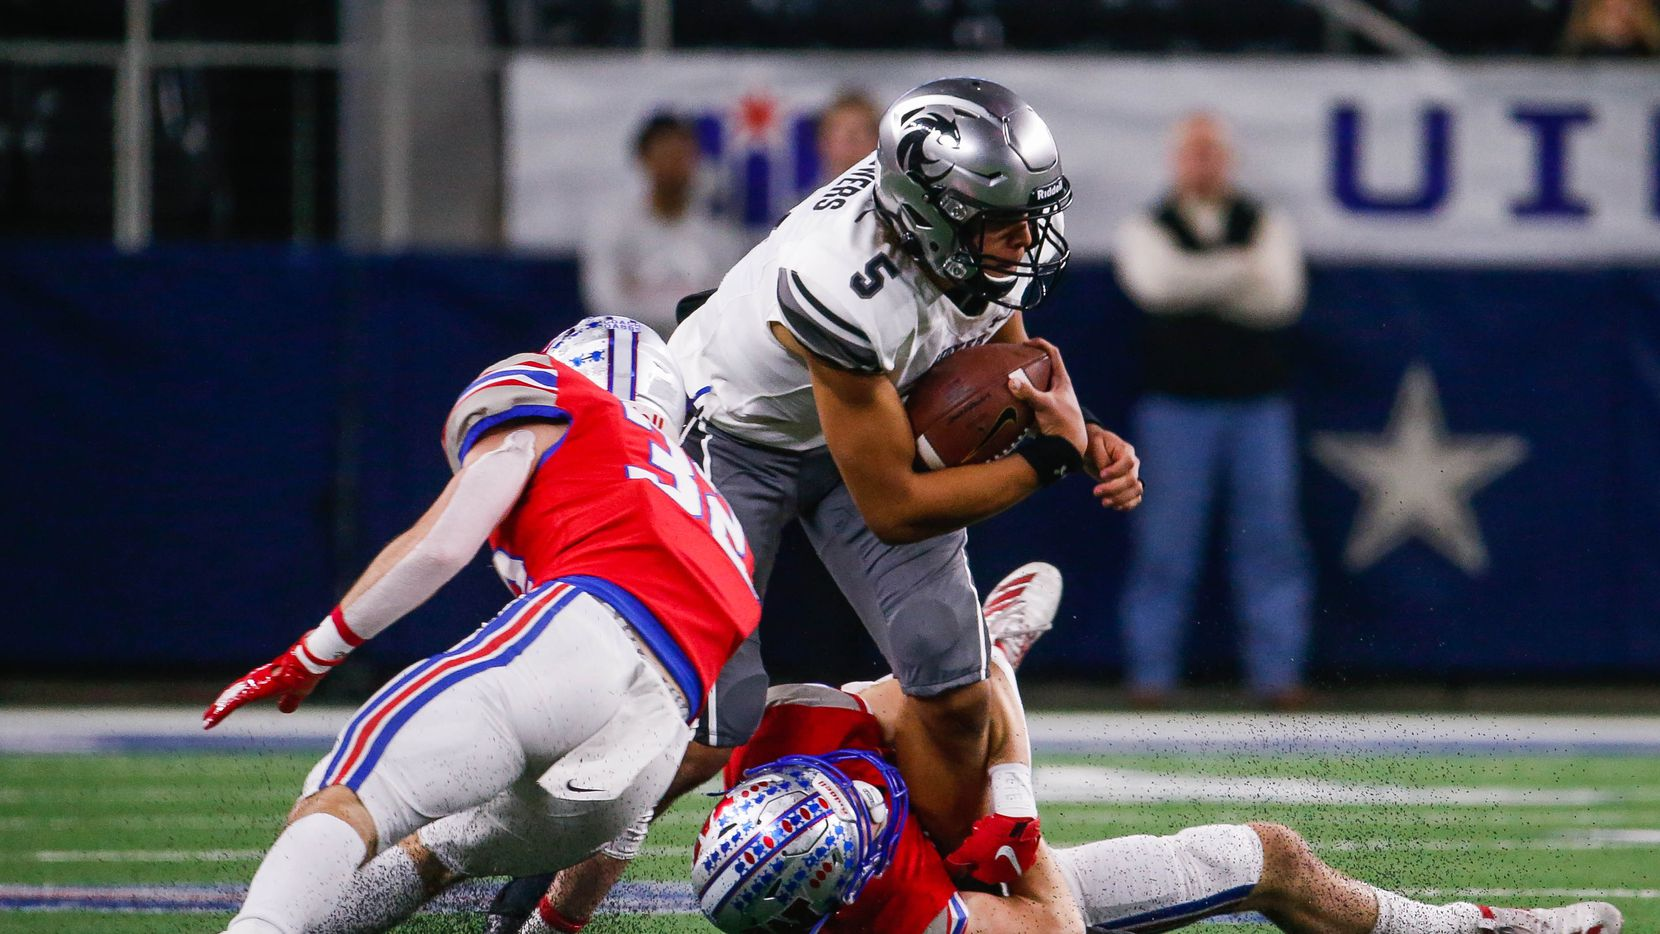 Denton Guyer's quarterback Eli Stowers (5) gets taken down by Austin Westlake's defense in the first quarter of a Class 6A Division II state championship game at the AT&T Stadium in Arlington, on Saturday, December 21, 2019.